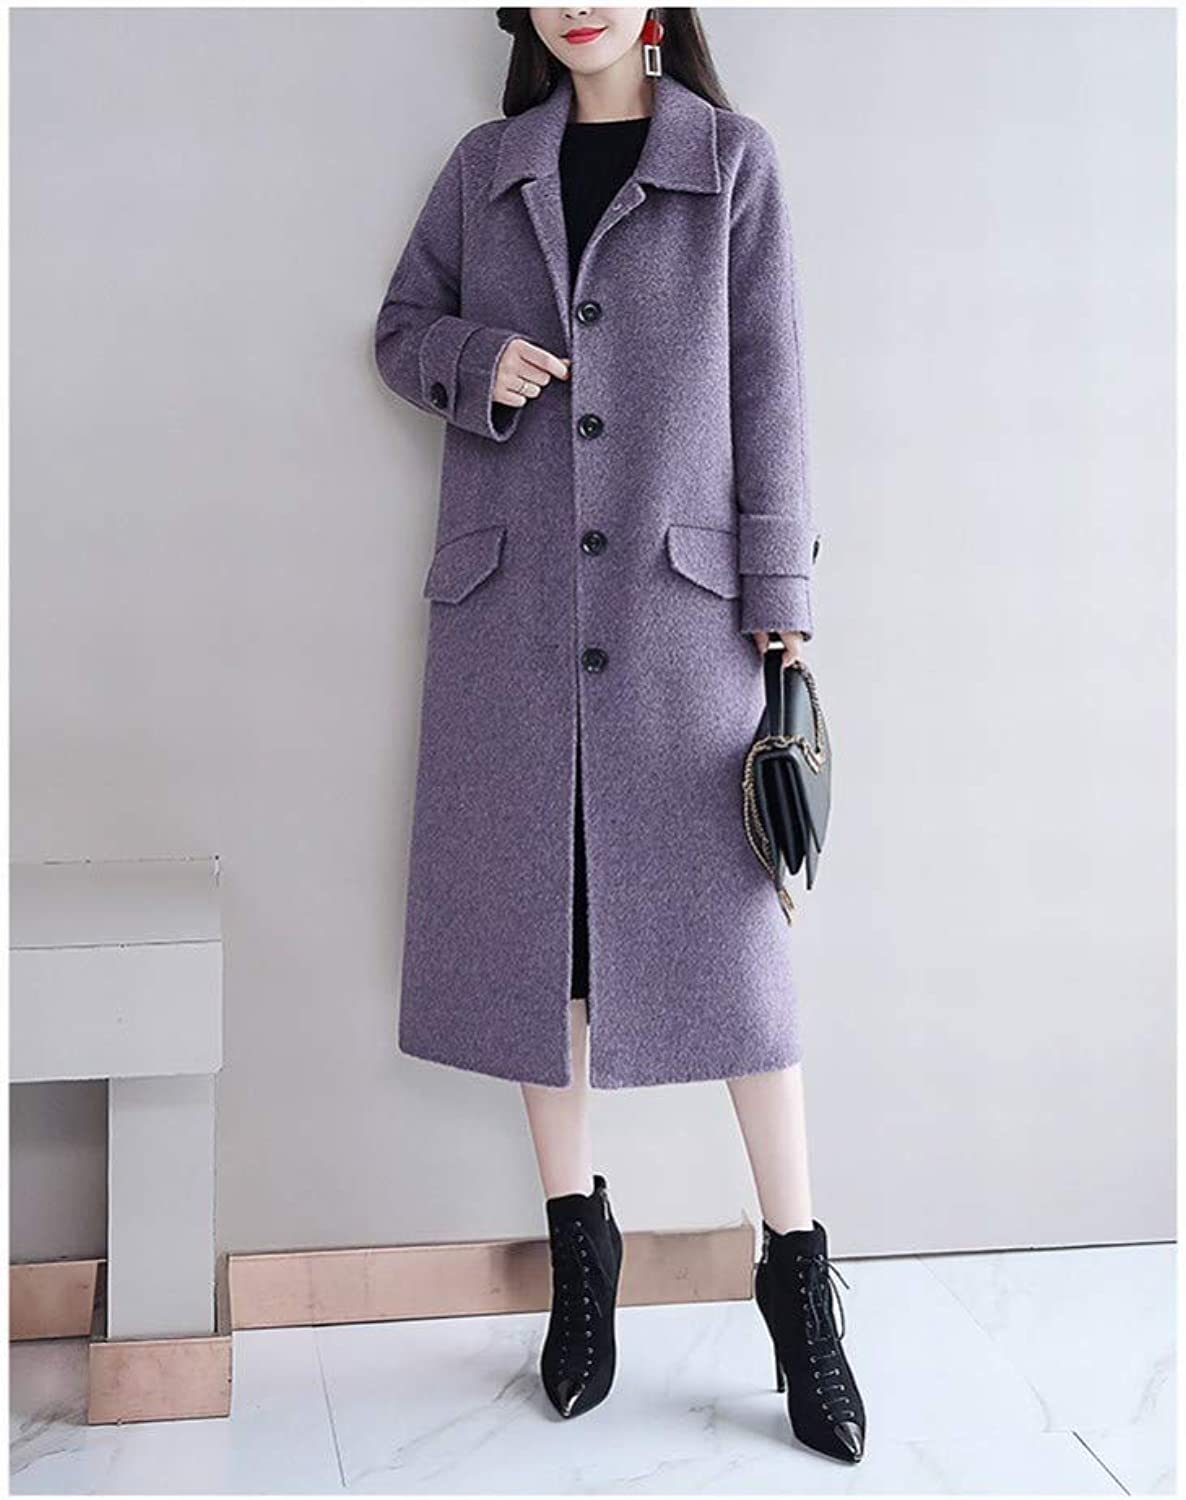 Ladies' Clothes  Medium and Long Wool Coat, Autumn and Winter Women's Fashion Temperament Nizi Coat, Purple Woolen Coat Winter Coat Warm Coat SED